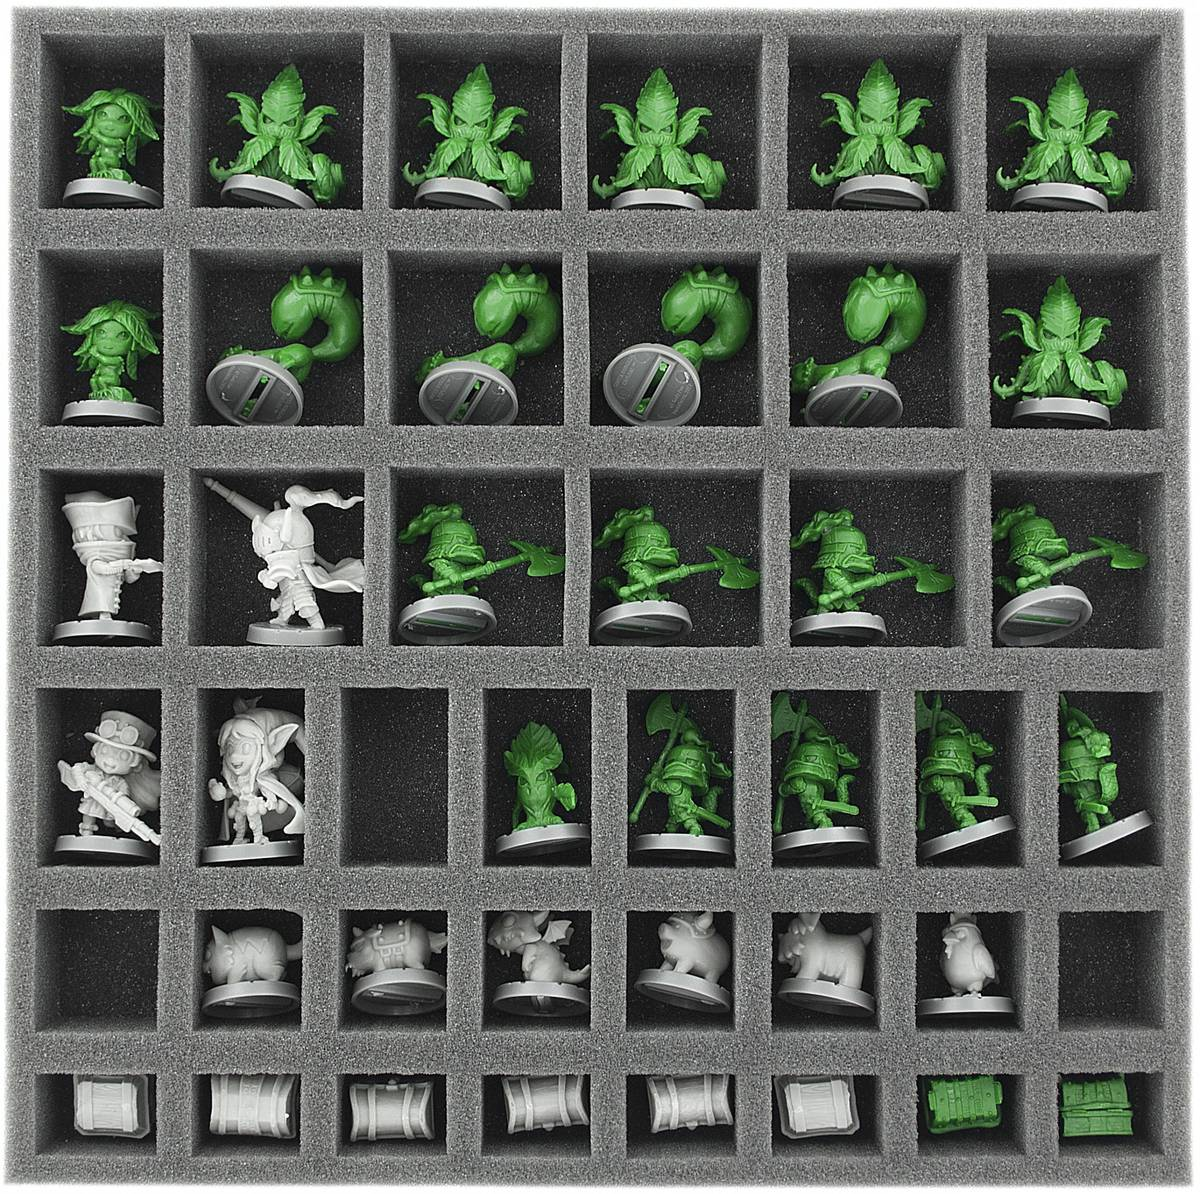 AF035SD04 35 mm foam tray for Super Dungeon Explore - Forgotten King